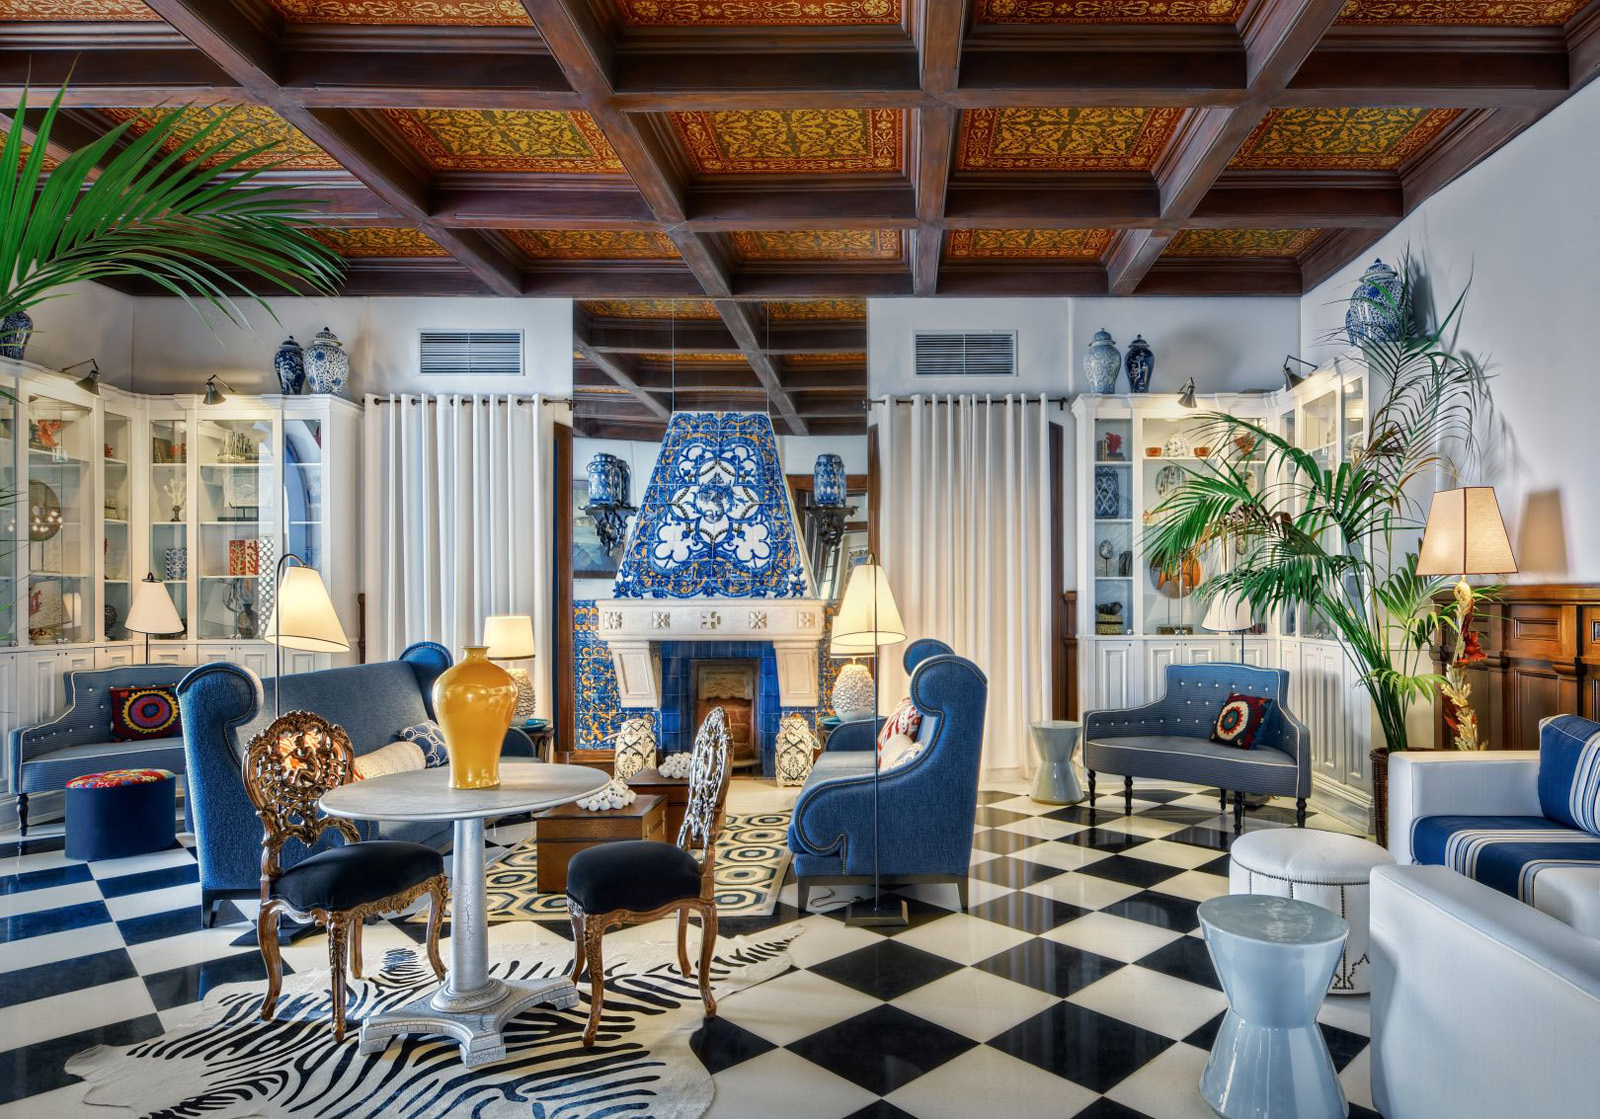 Hotel bela vista eclectic interiors idesignarch for Eclectic hotels